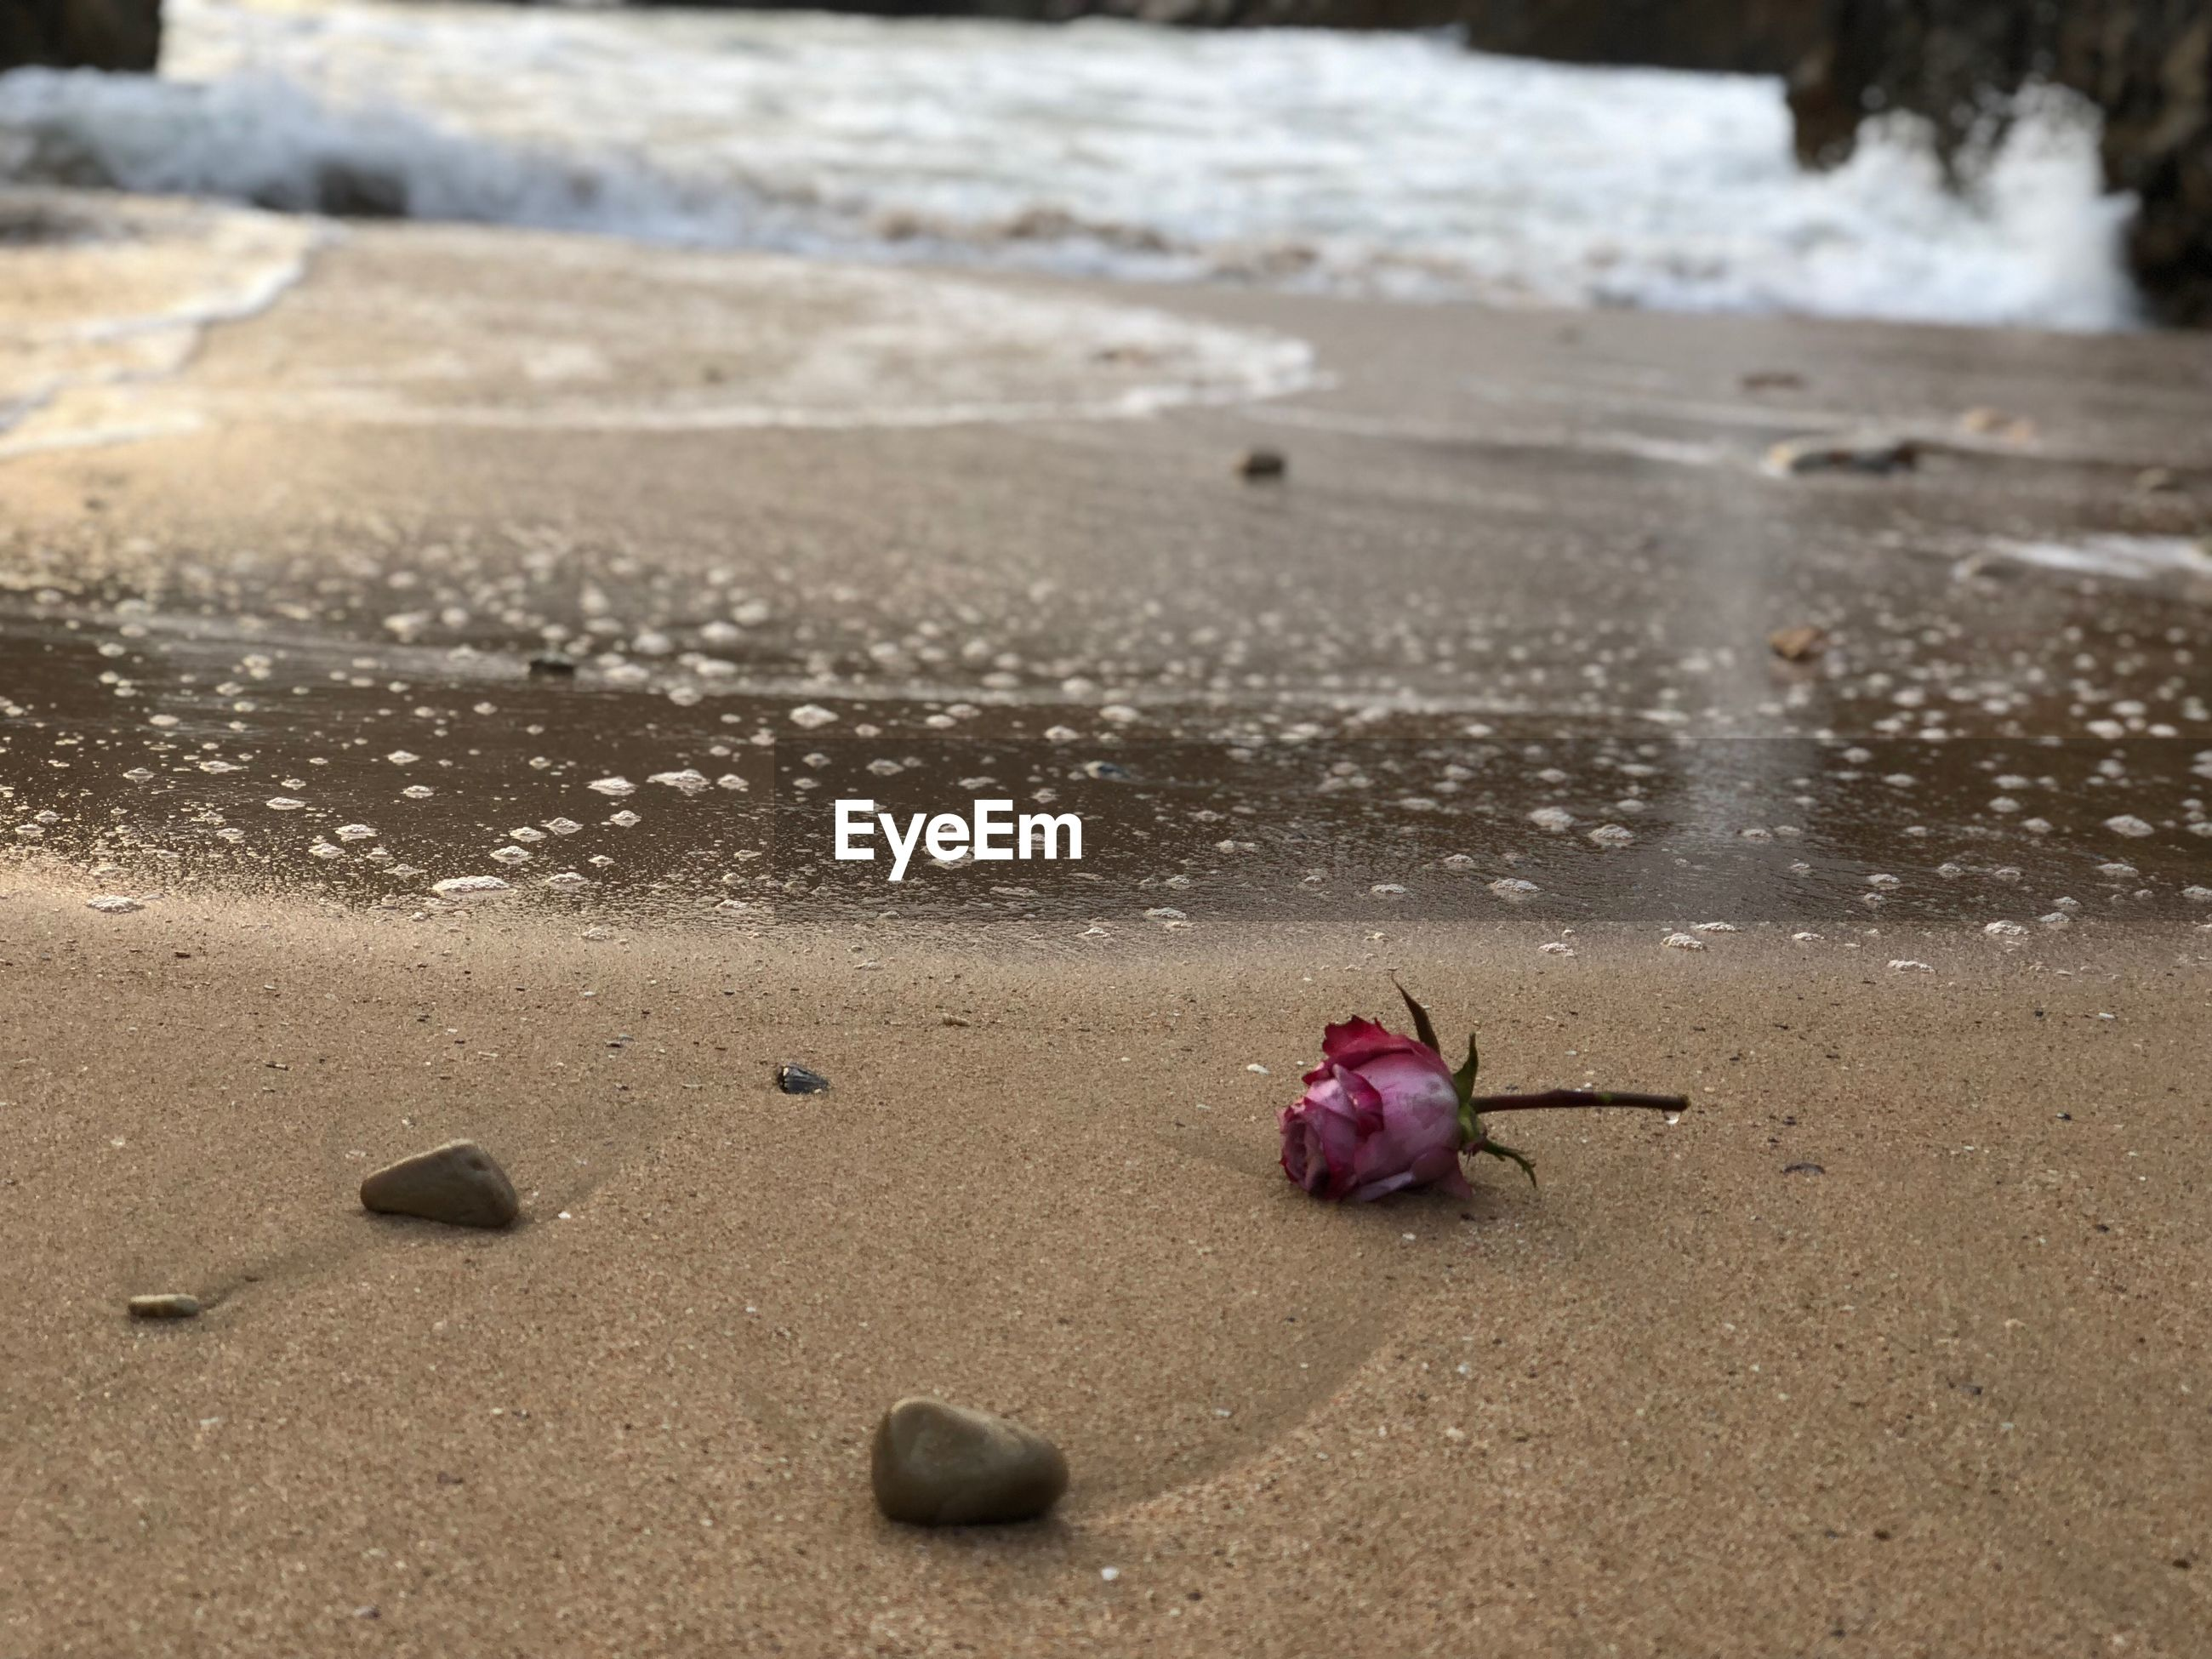 CLOSE-UP OF PINK FLOWER ON SAND